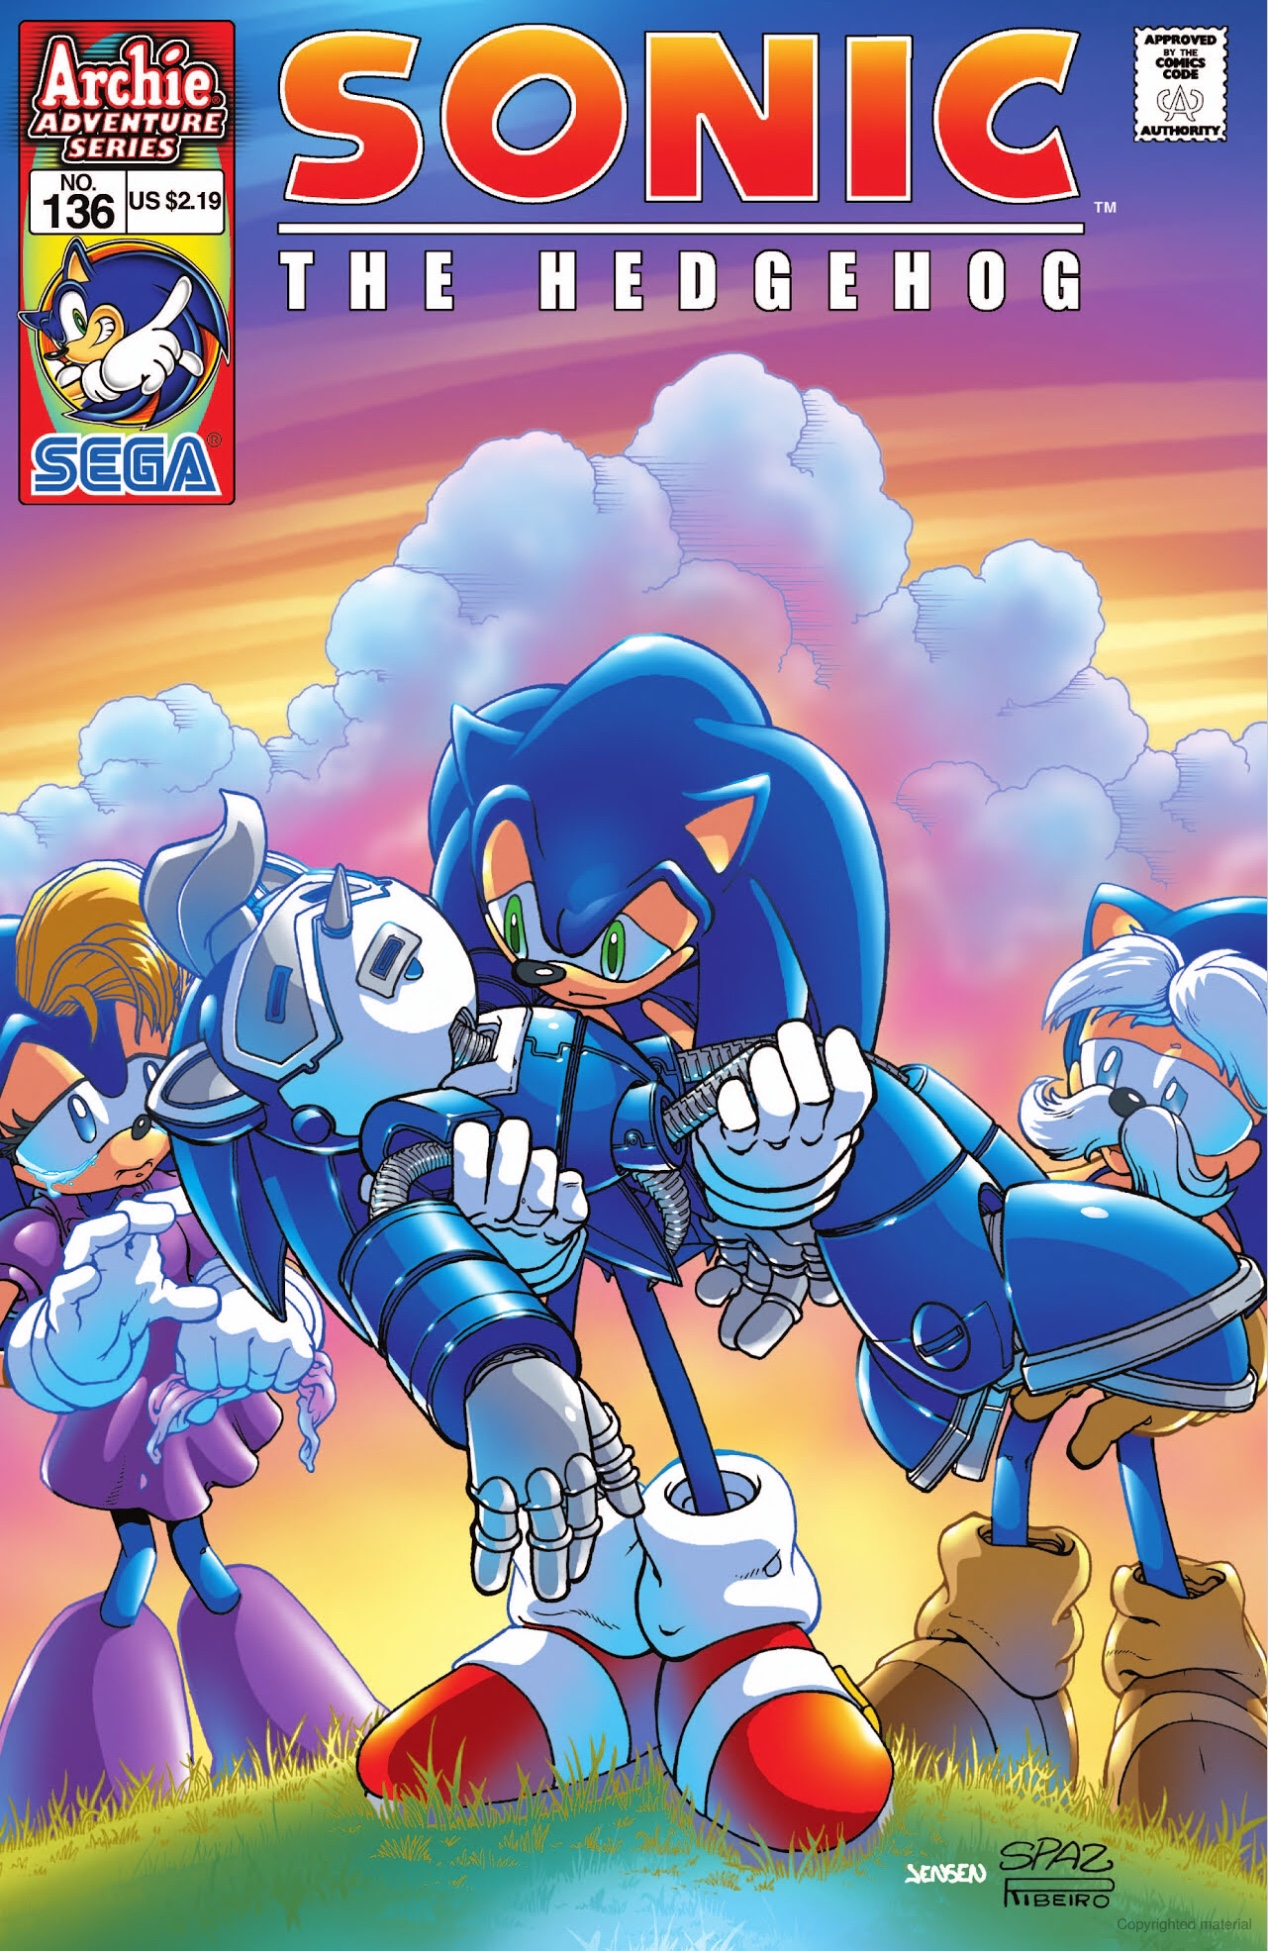 Archie Sonic the Hedgehog Issue 136